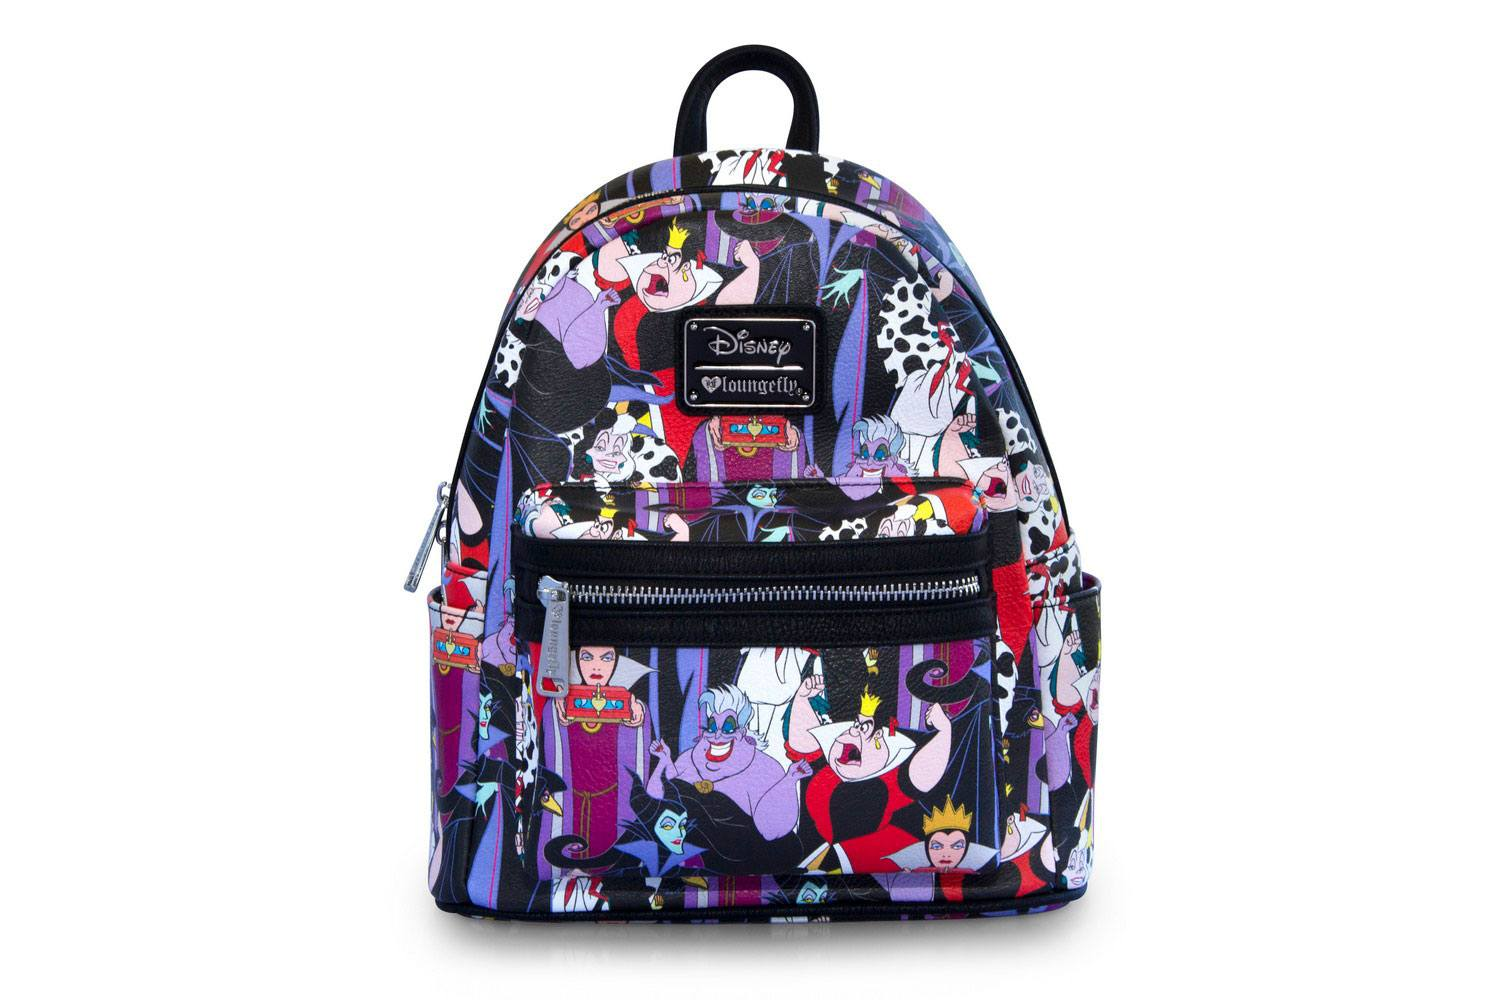 Disney by Loungefly Backpack Villains AOP